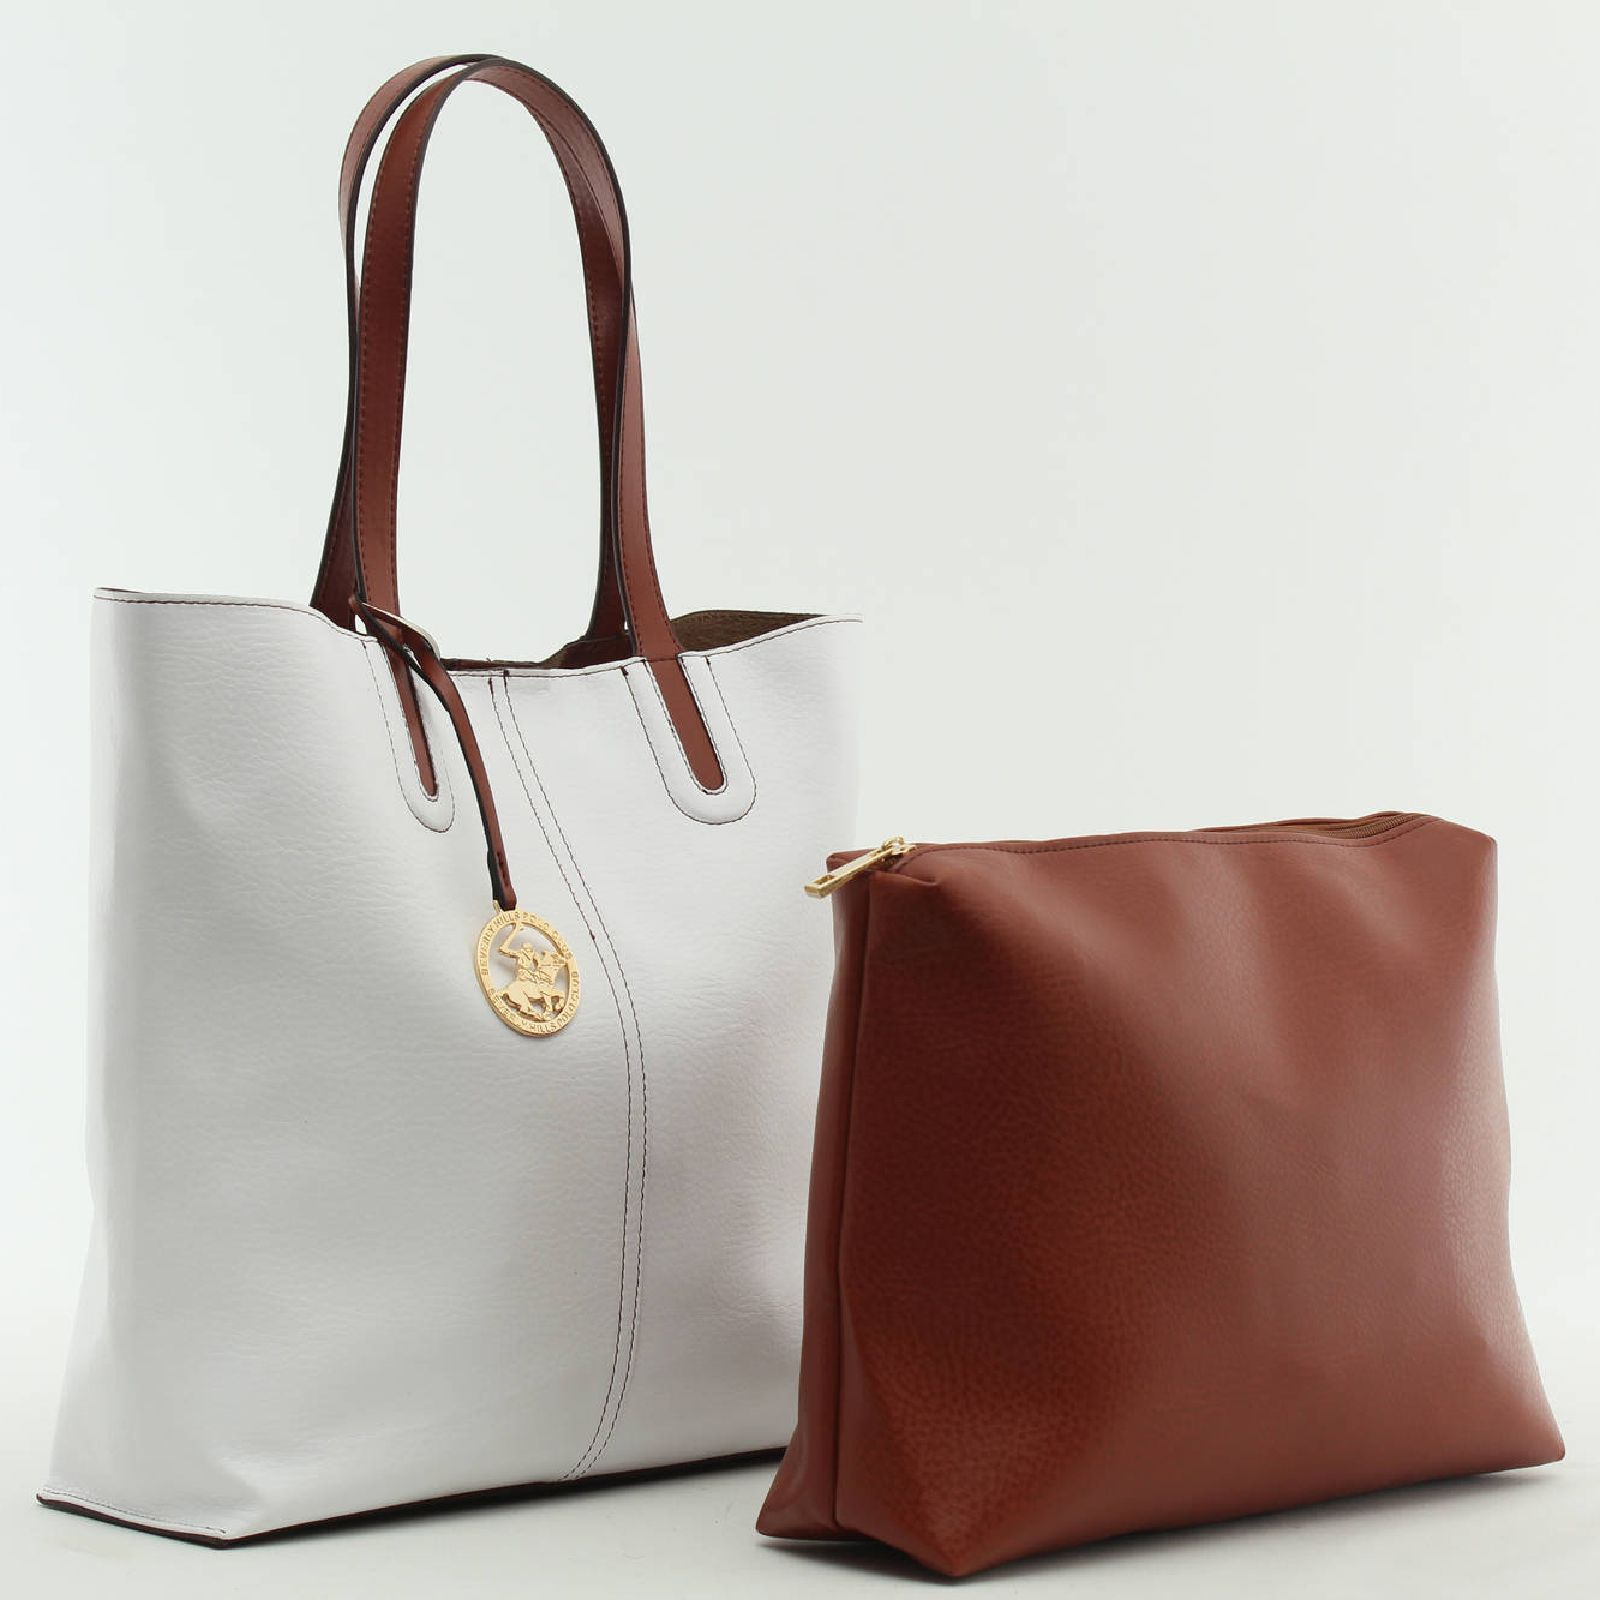 Exceptionnel Beverly Hills Polo Club Sac cabas avec pochette amovible - blanc  JS79